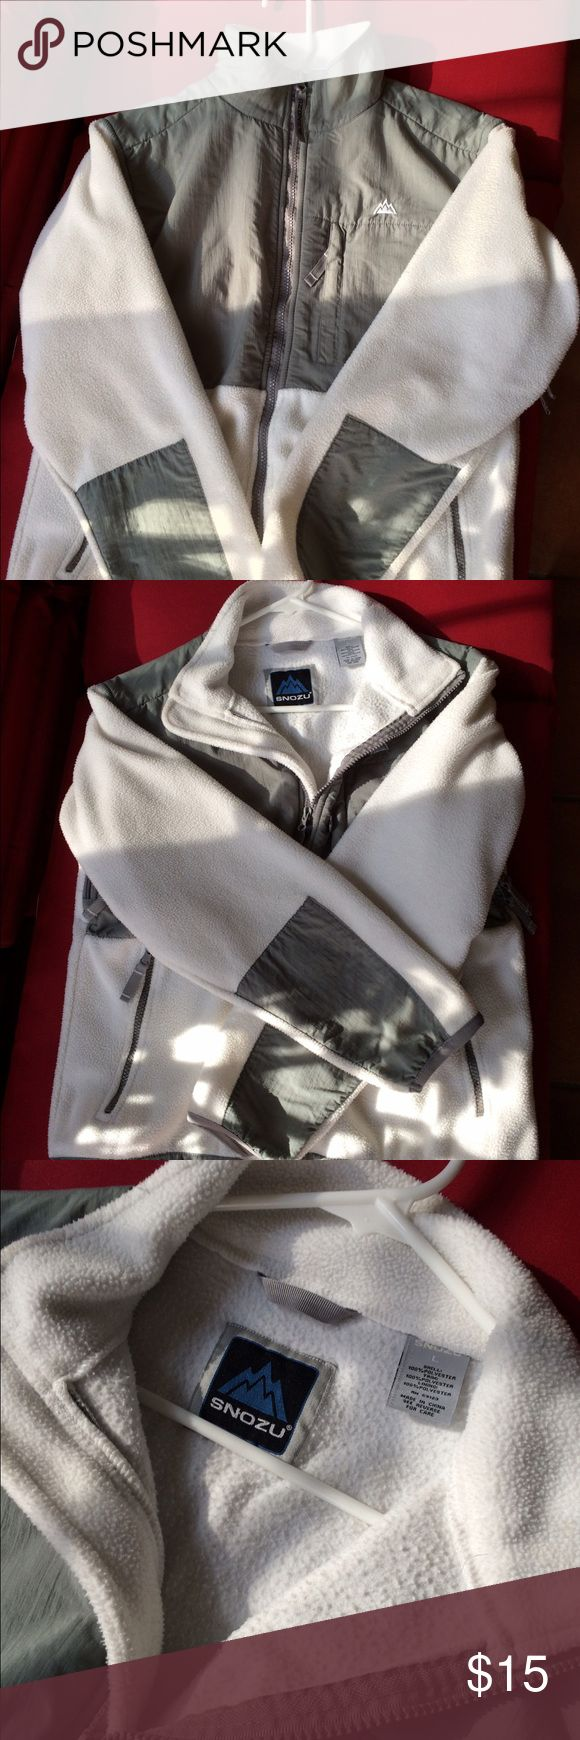 White and grey zip-up fleece. Make an offer on this: Nice Snozu white and grey zip-up fleece with side zip pockets and hidden breast zip pocket. Also has zip vent under both sleeves.  Great to wear alone or as added warmth under a coat. Snozu Jackets & Coats